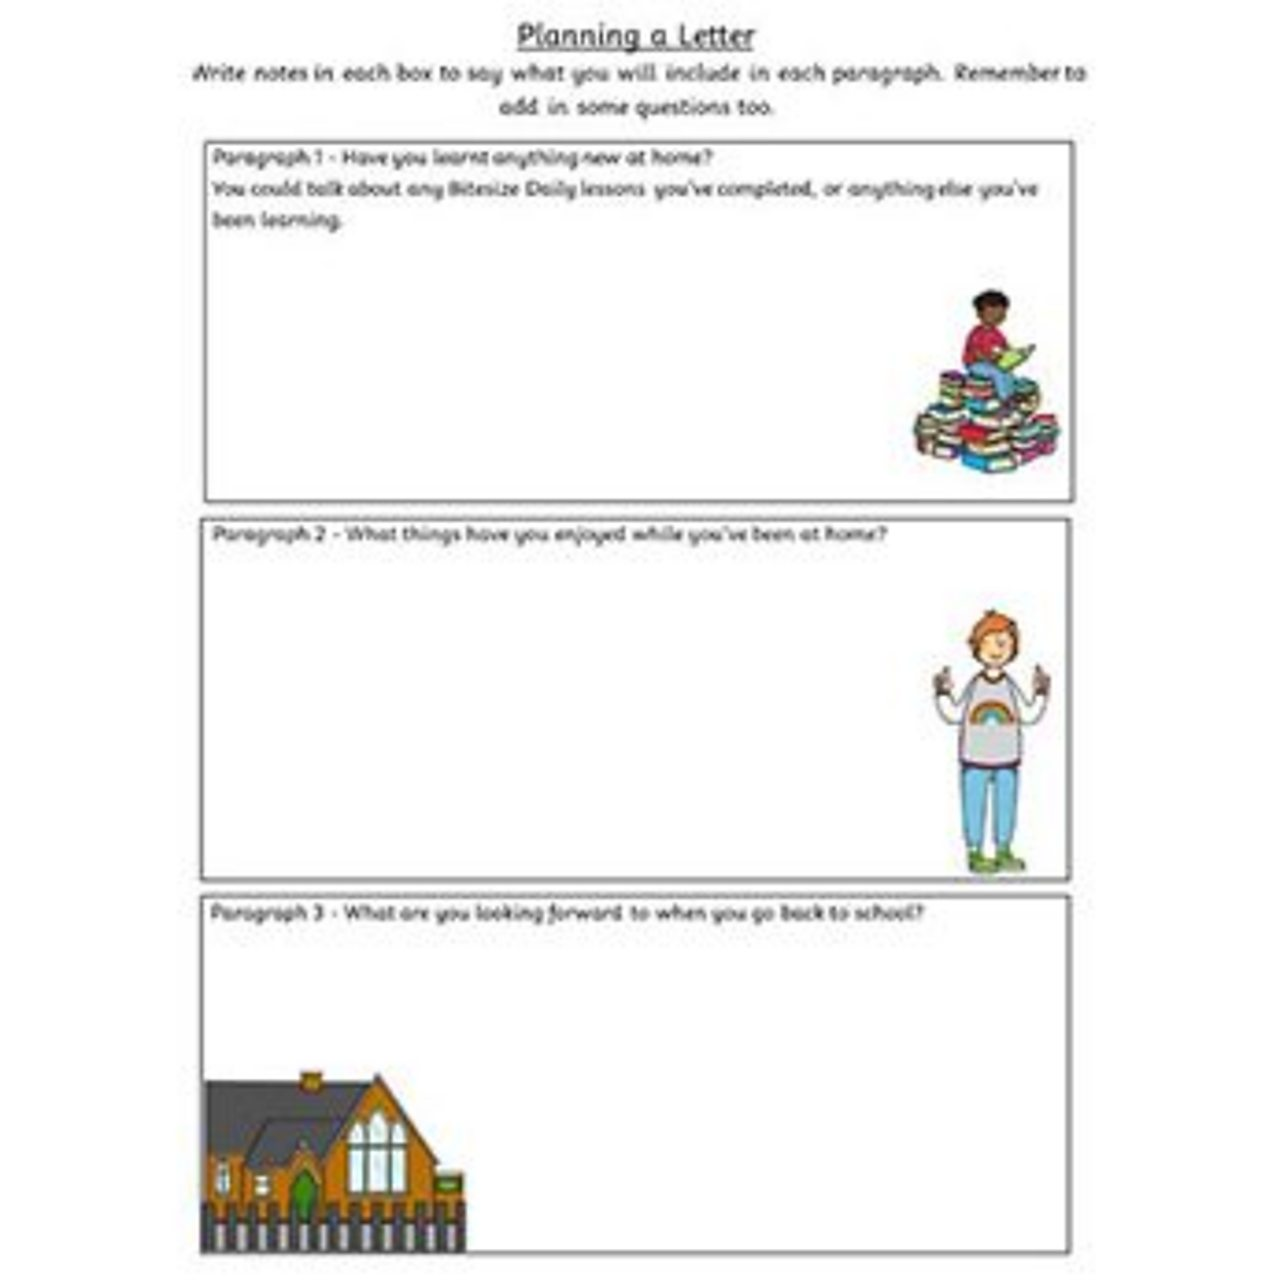 Planning a Letter